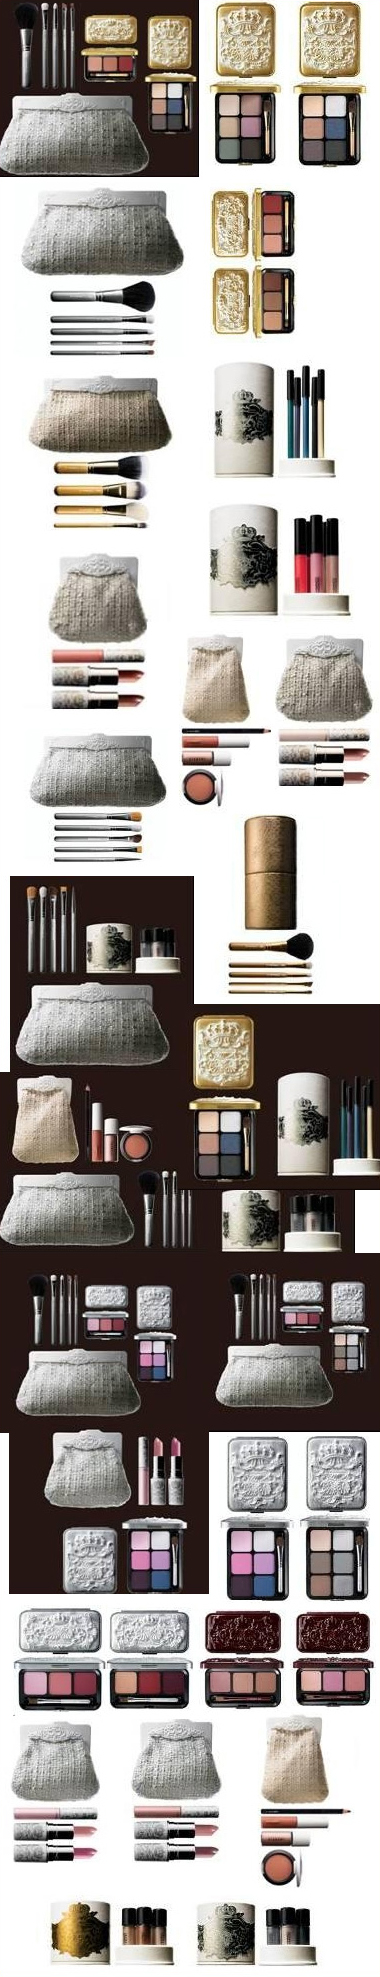 MAC COSMETICS HOLIDAY 2007 COLLECTION